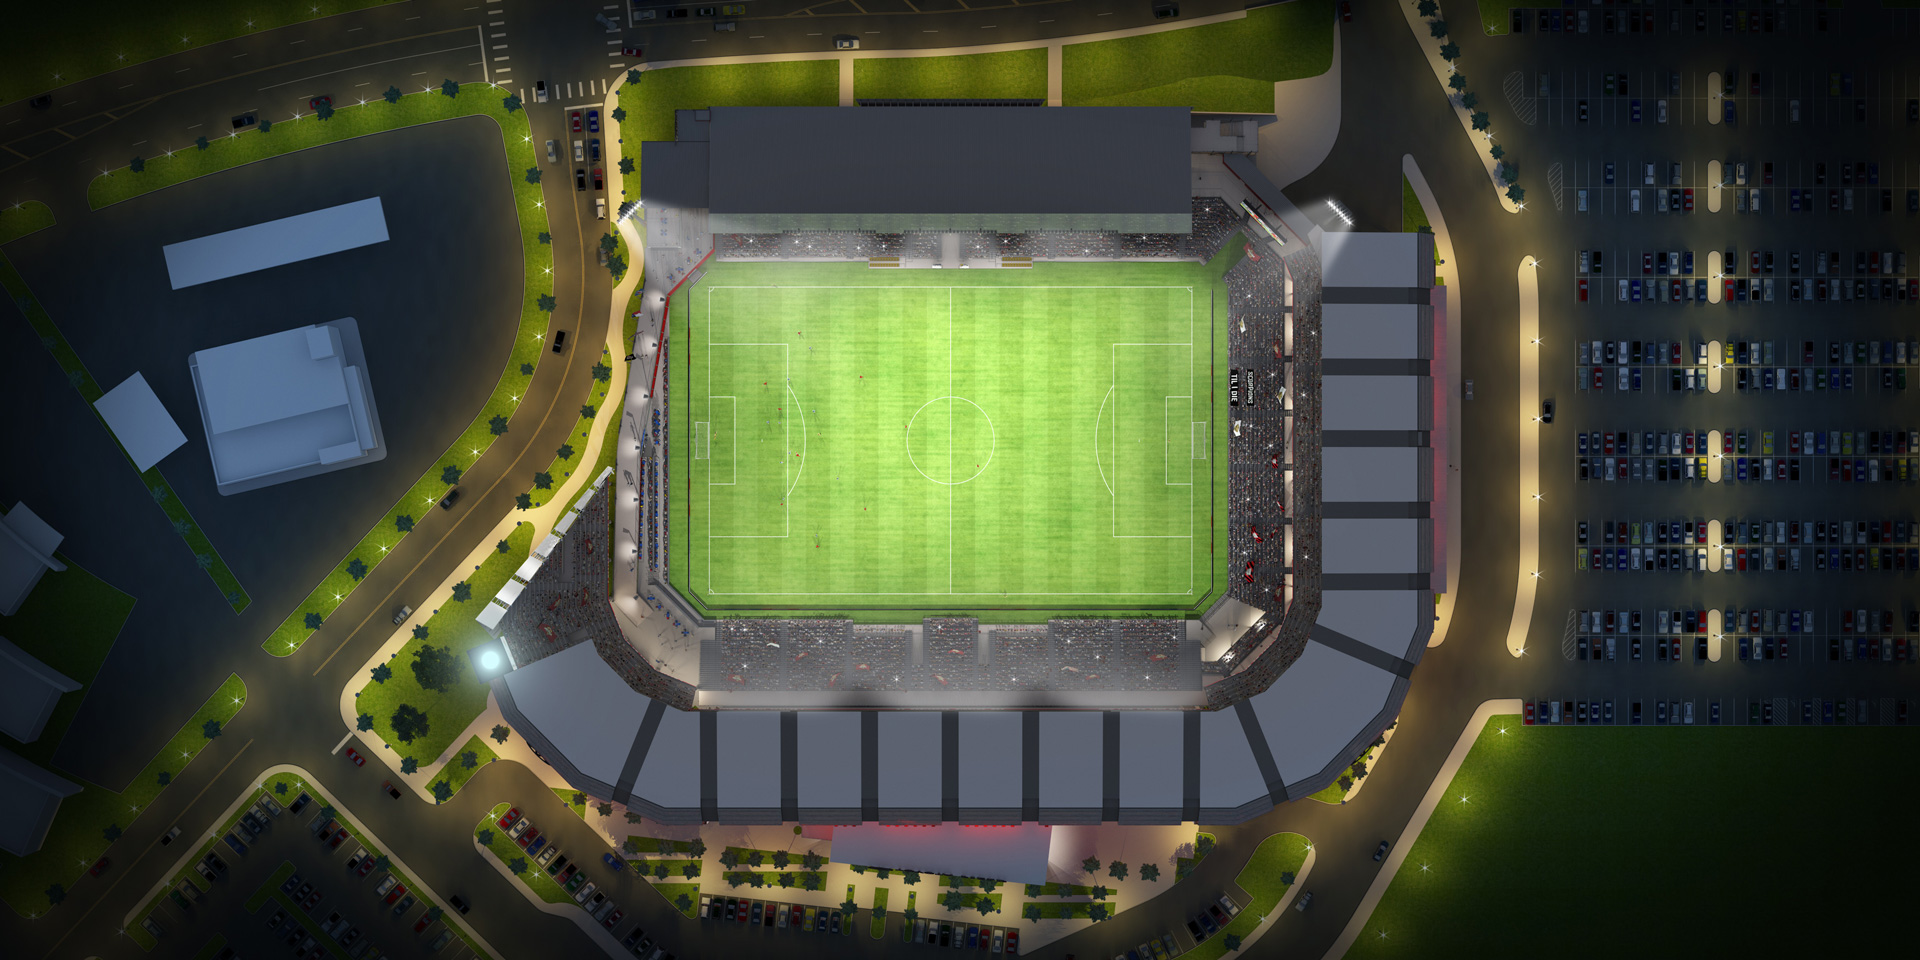 Toyota Field 3D Illustration Rendering